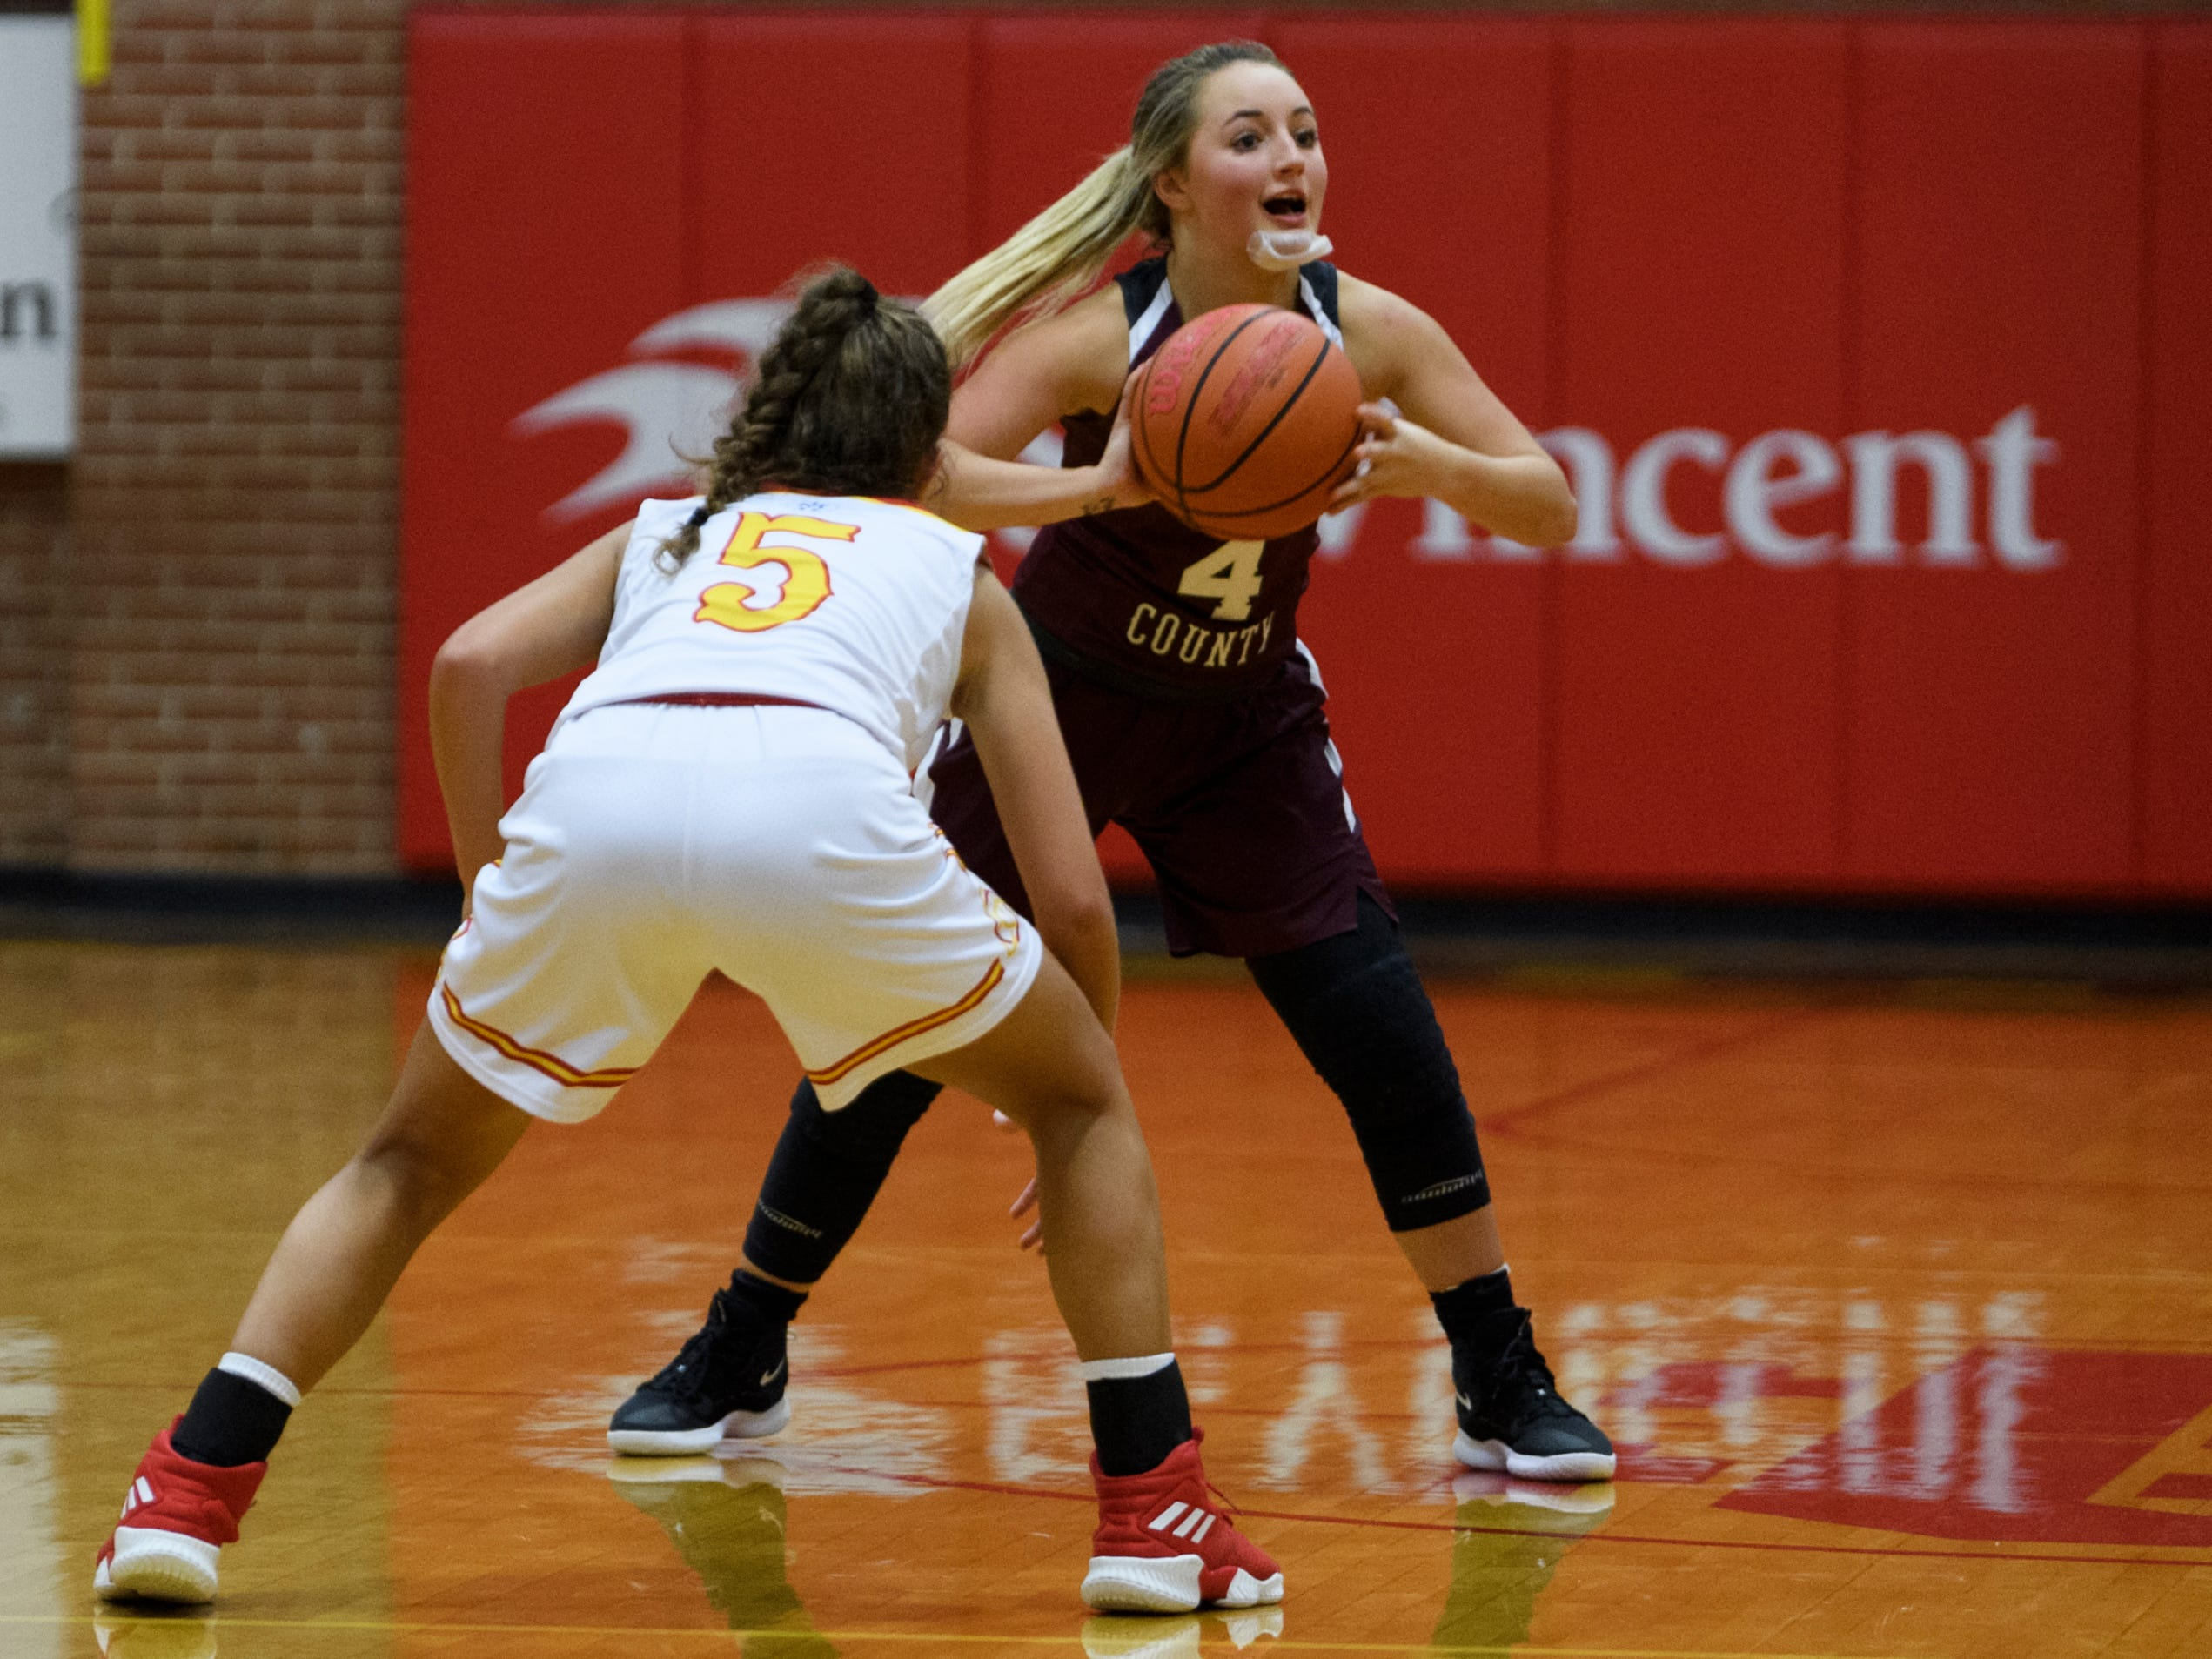 Henderson County's Savannah Lacer (4) looks to make a pass as Mater Dei's Alaina Spahn (5) guards her at Mater Dei High School in Evansville, Tuesday, Dec. 11, 2018. The Lady Colonels defeated the Wildcats 53-40.